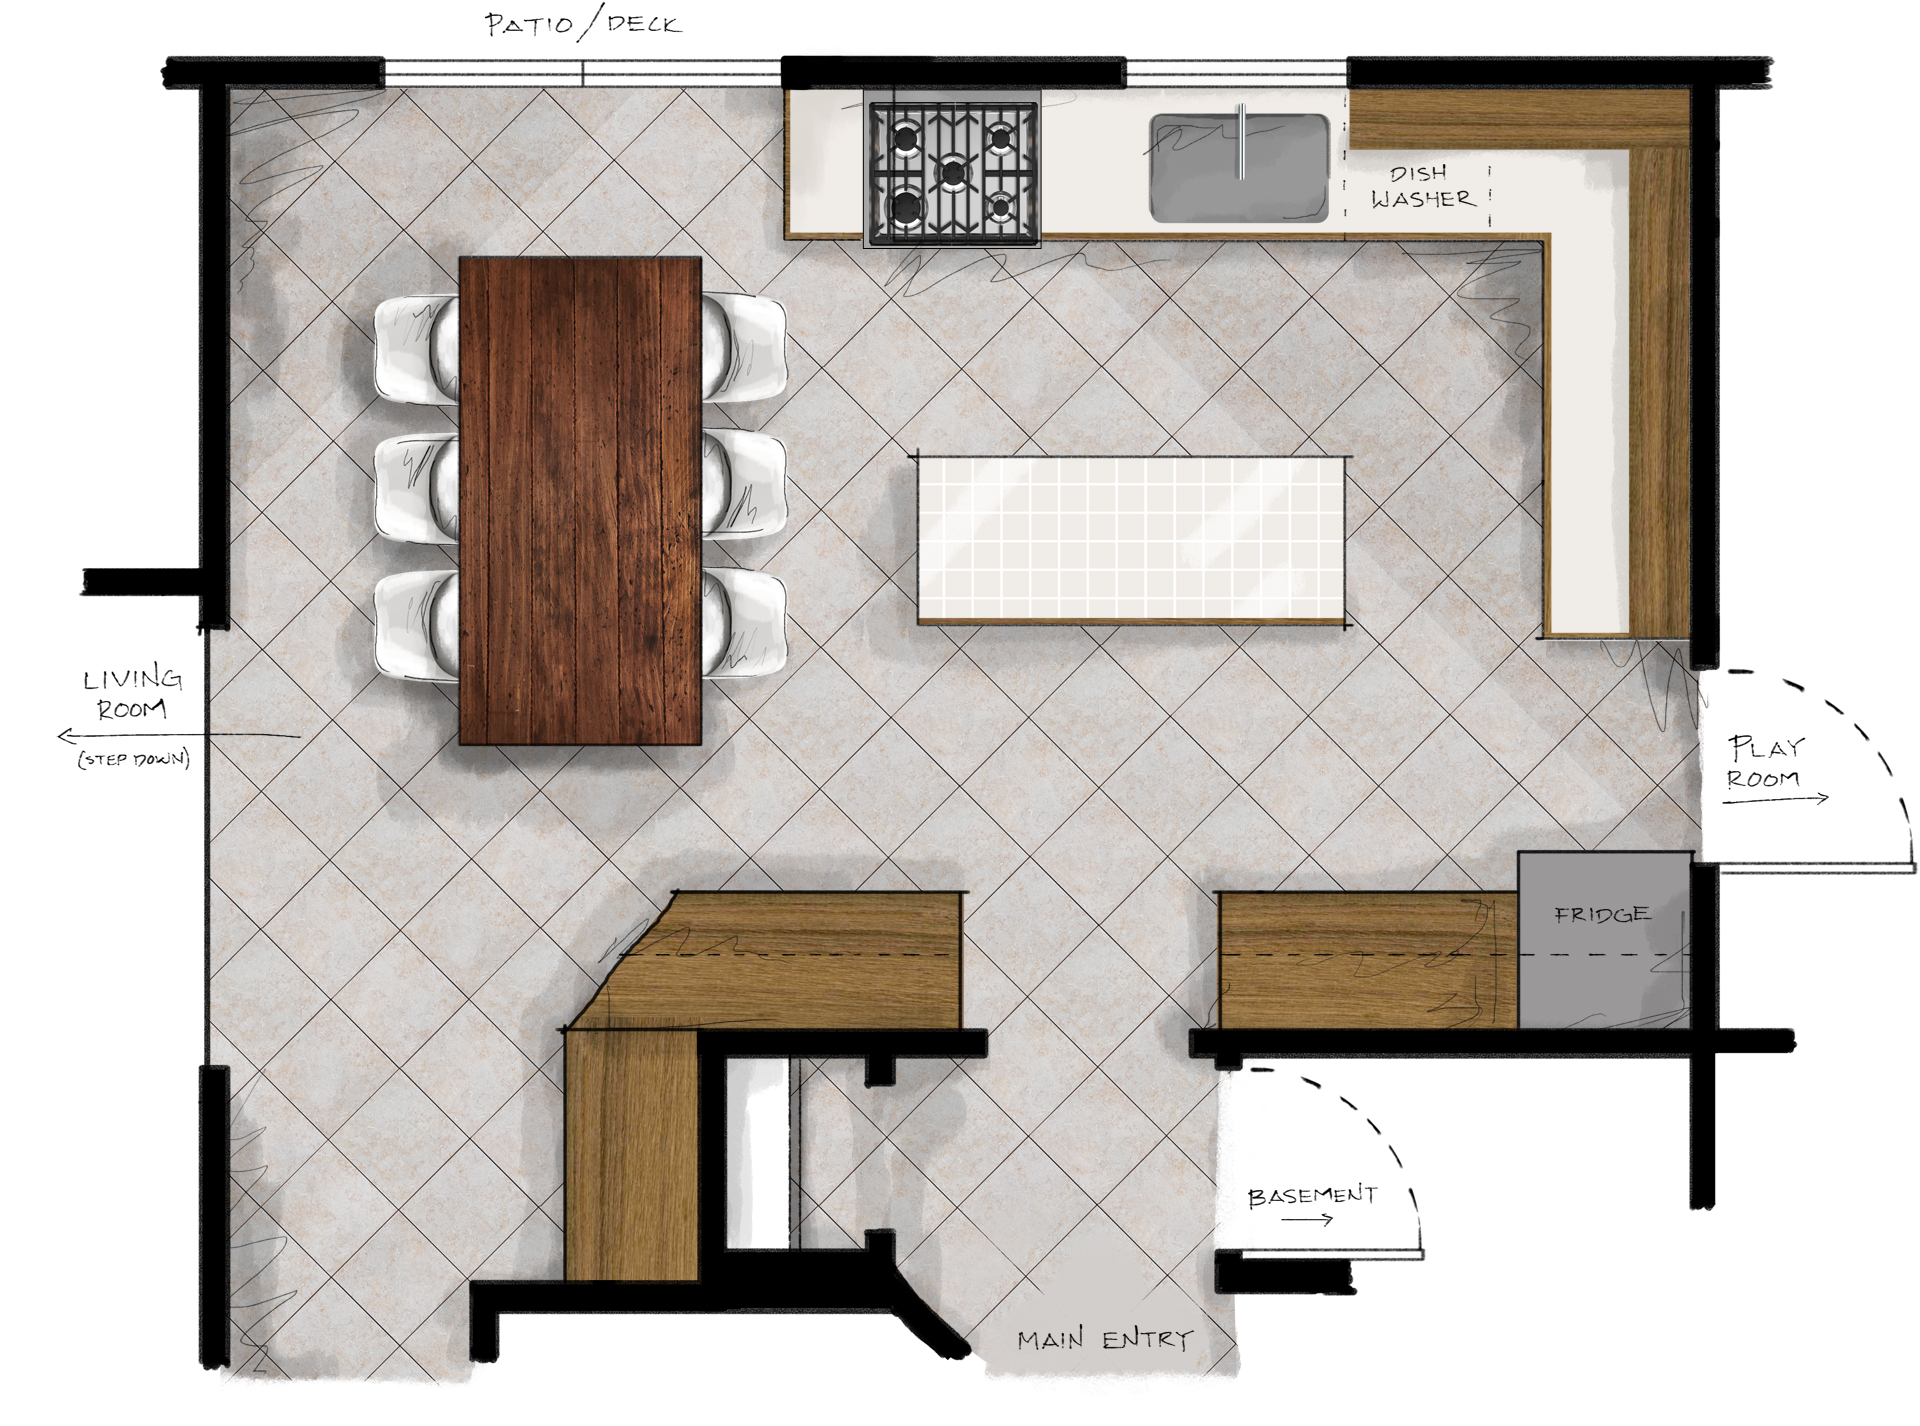 New kitchen plans making nice in the midwest for Pictures of kitchen plans